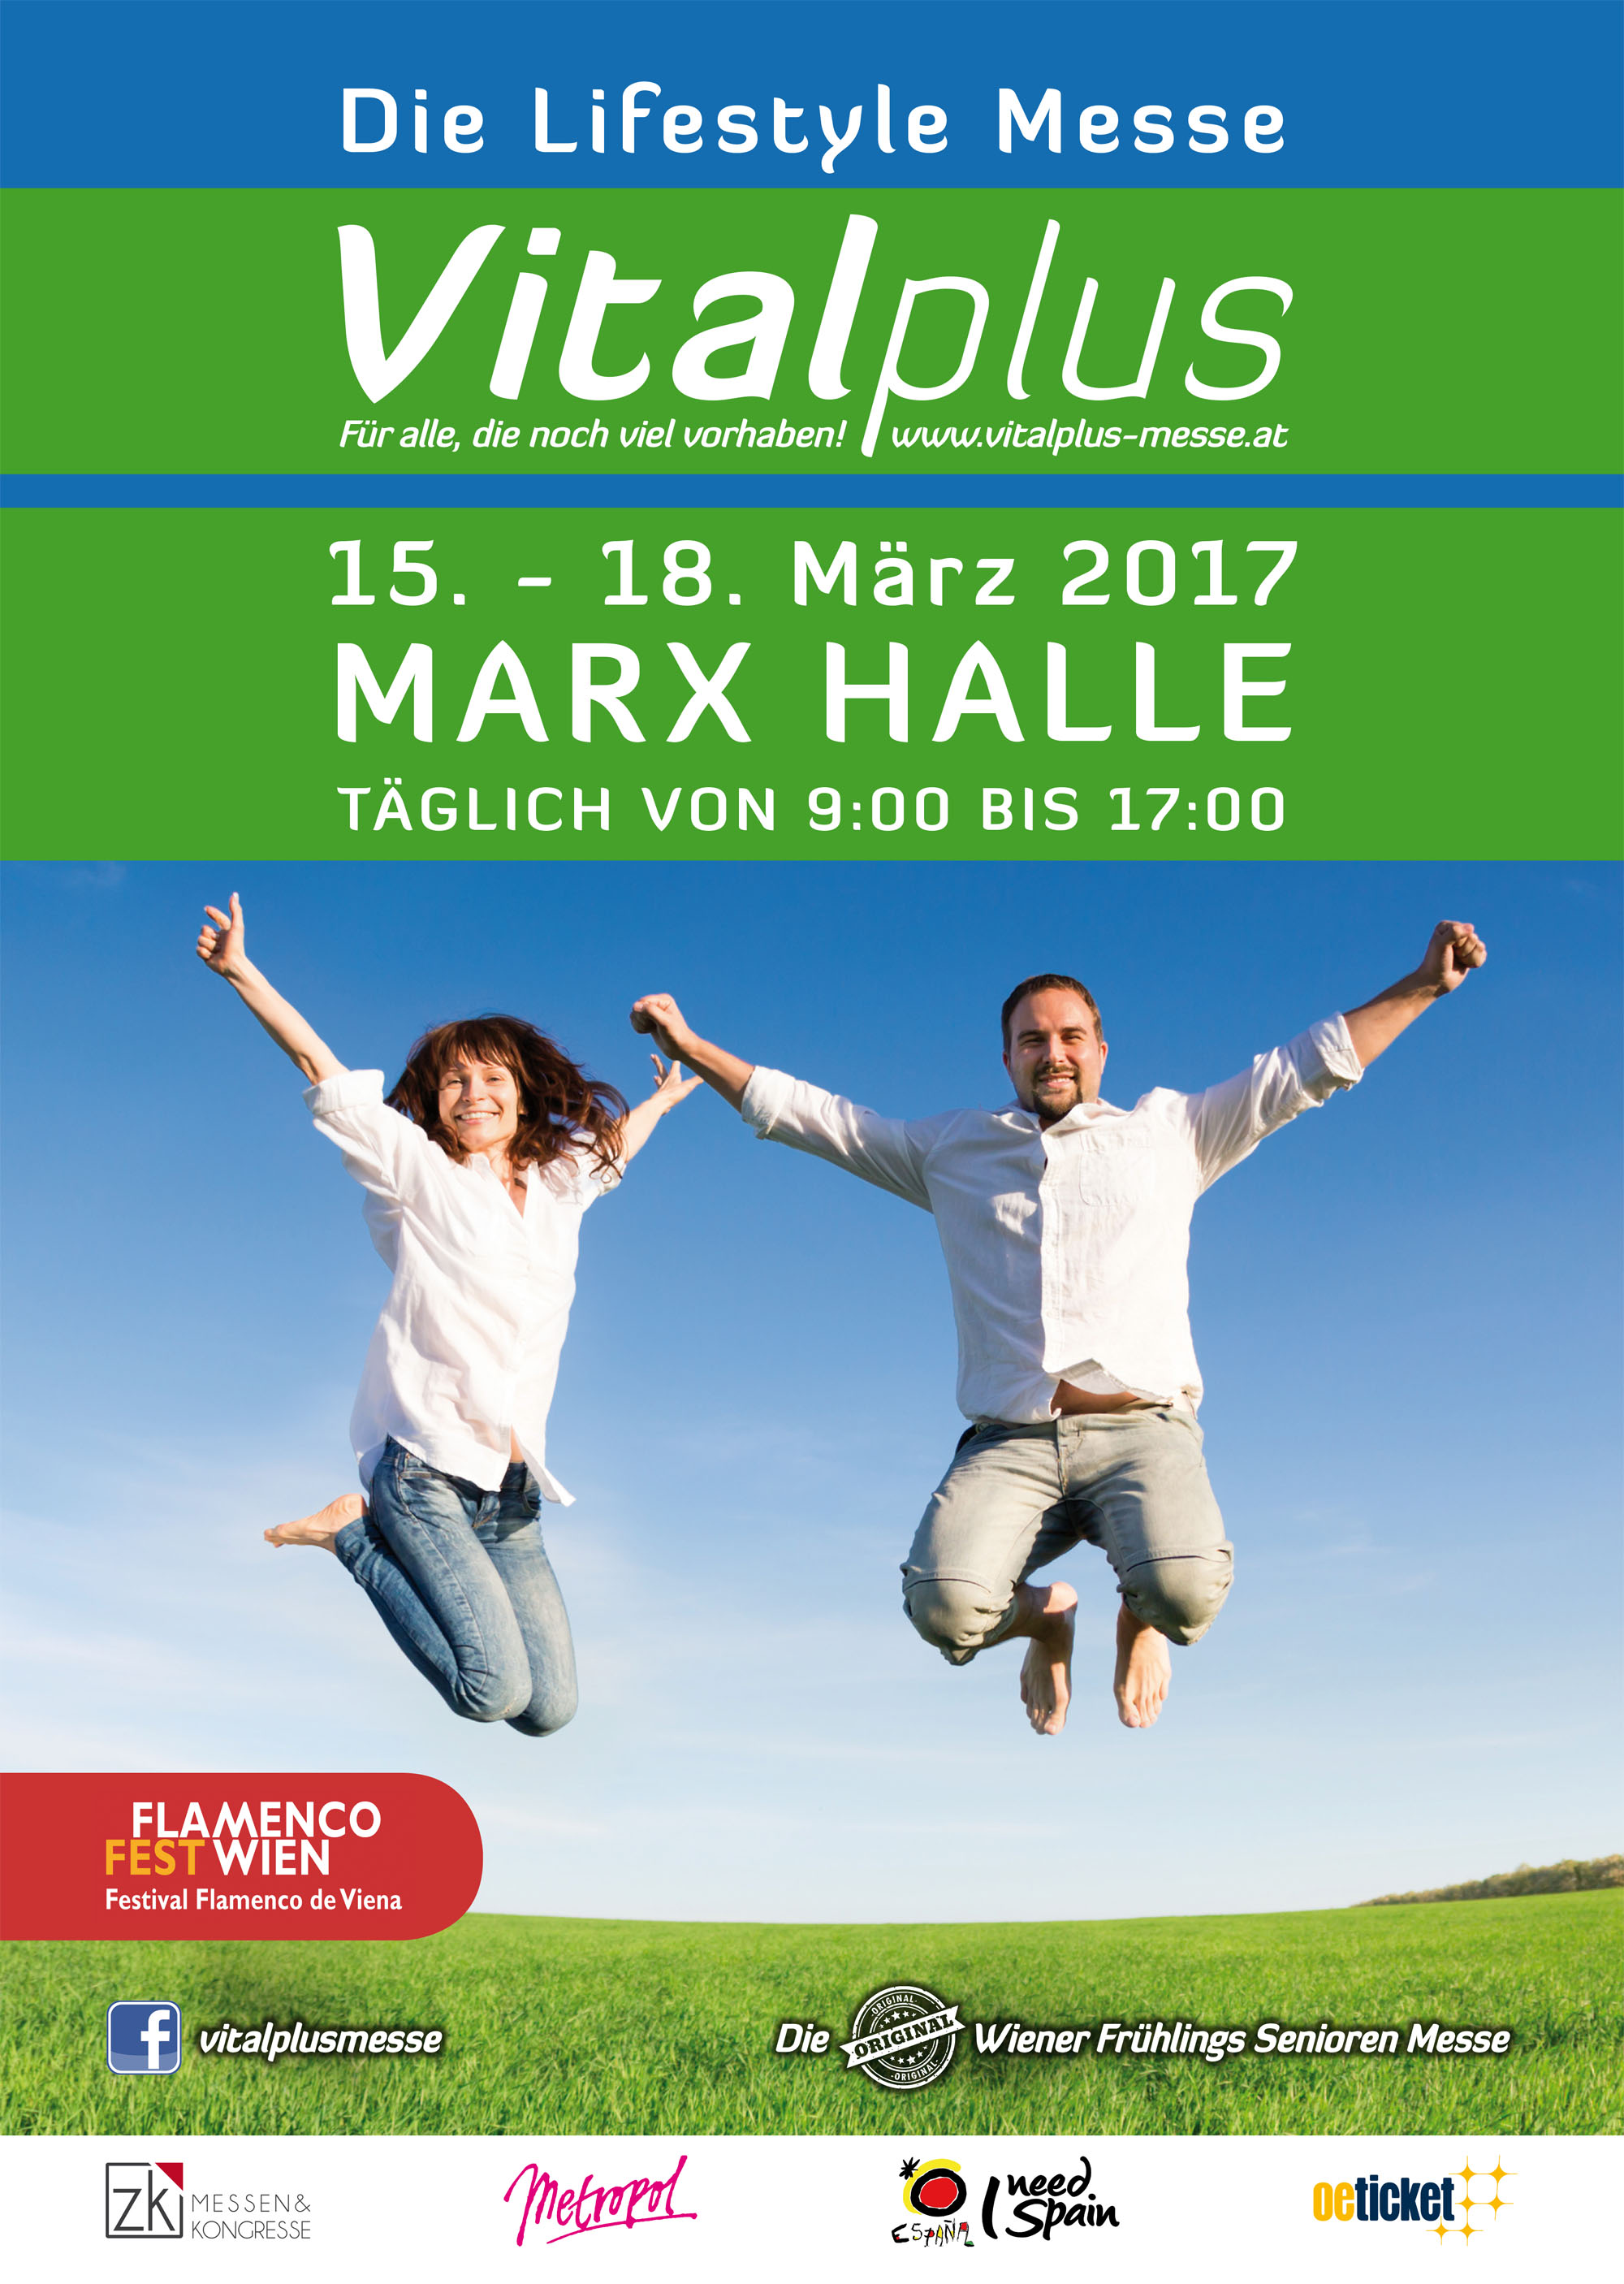 Die Lifestyle Messe Vitalplus - Die original Frühlings Senioren Messe